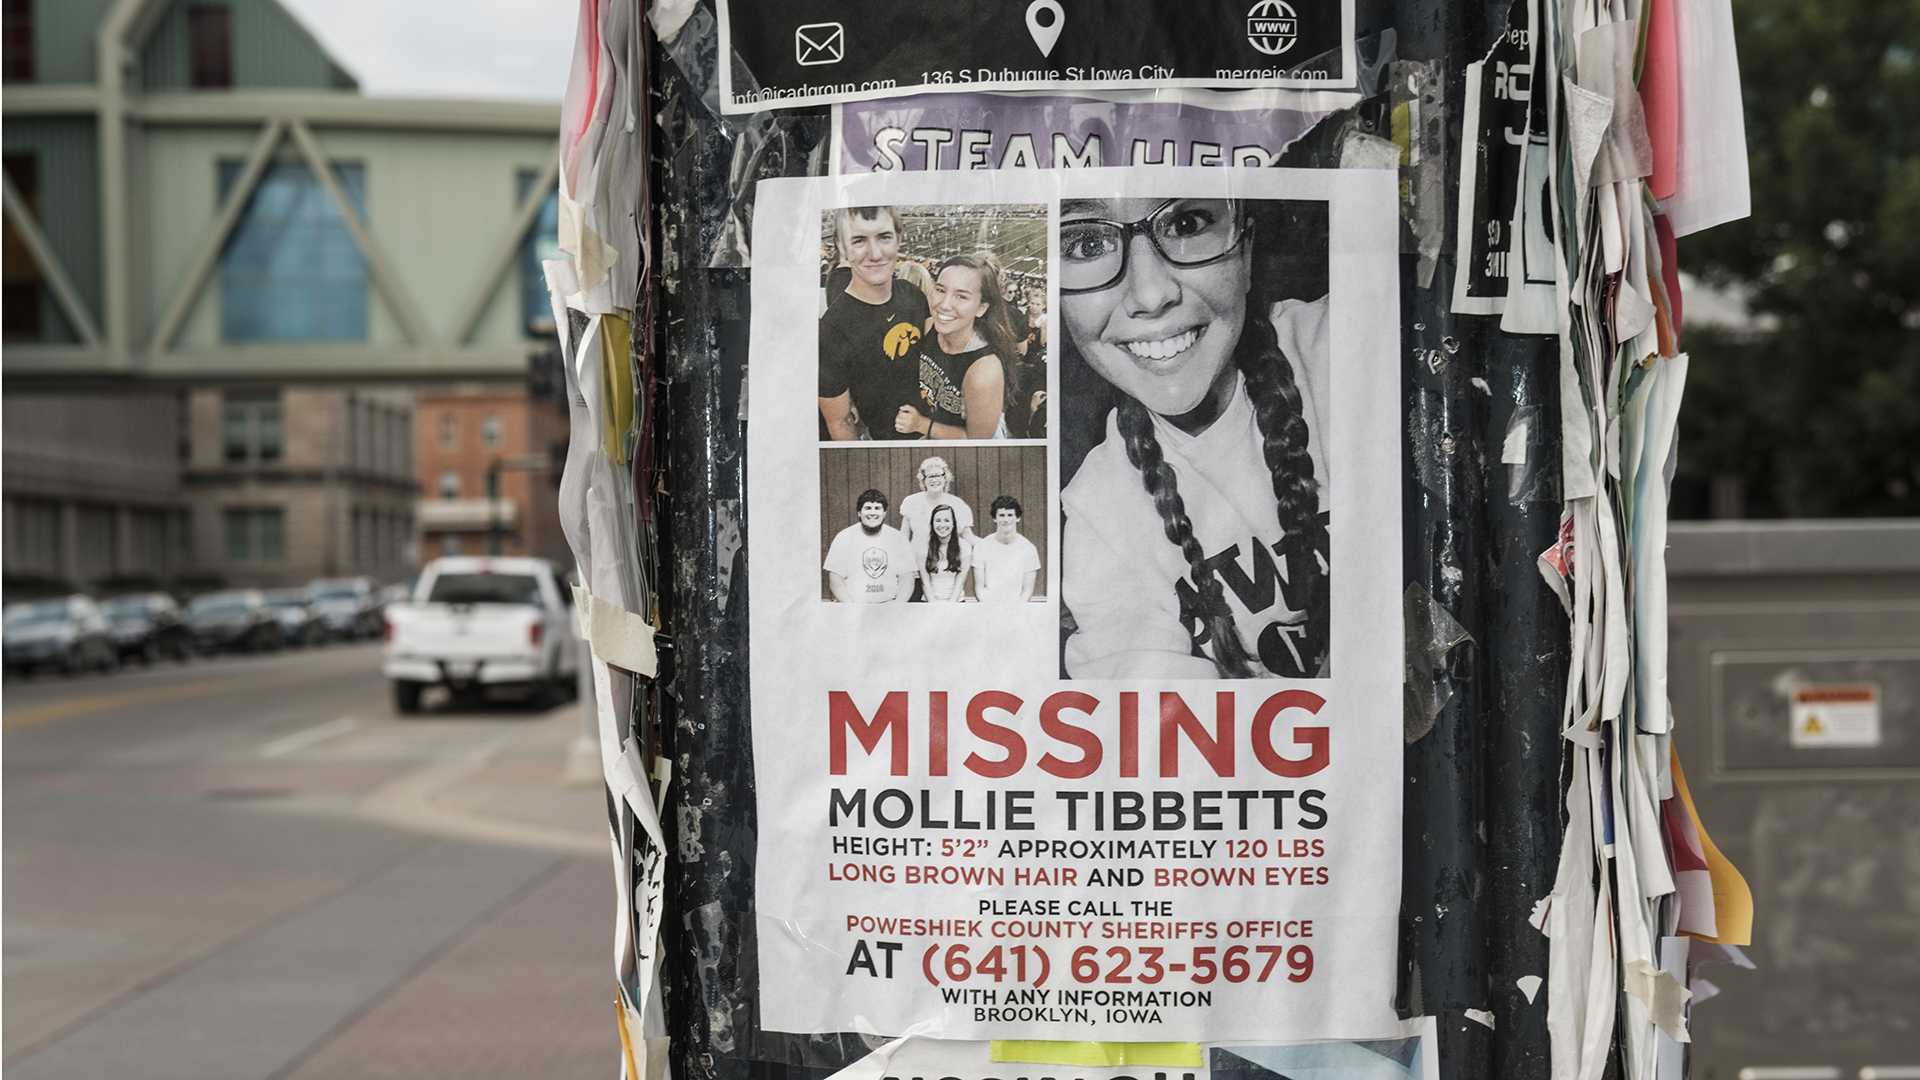 Missing posters for UI student Mollie Tibbetts are seen in Iowa City on Sunday, July 29, 2018. Tibbetts went missing between July 18 and 19, in Brooklyn, Iowa.